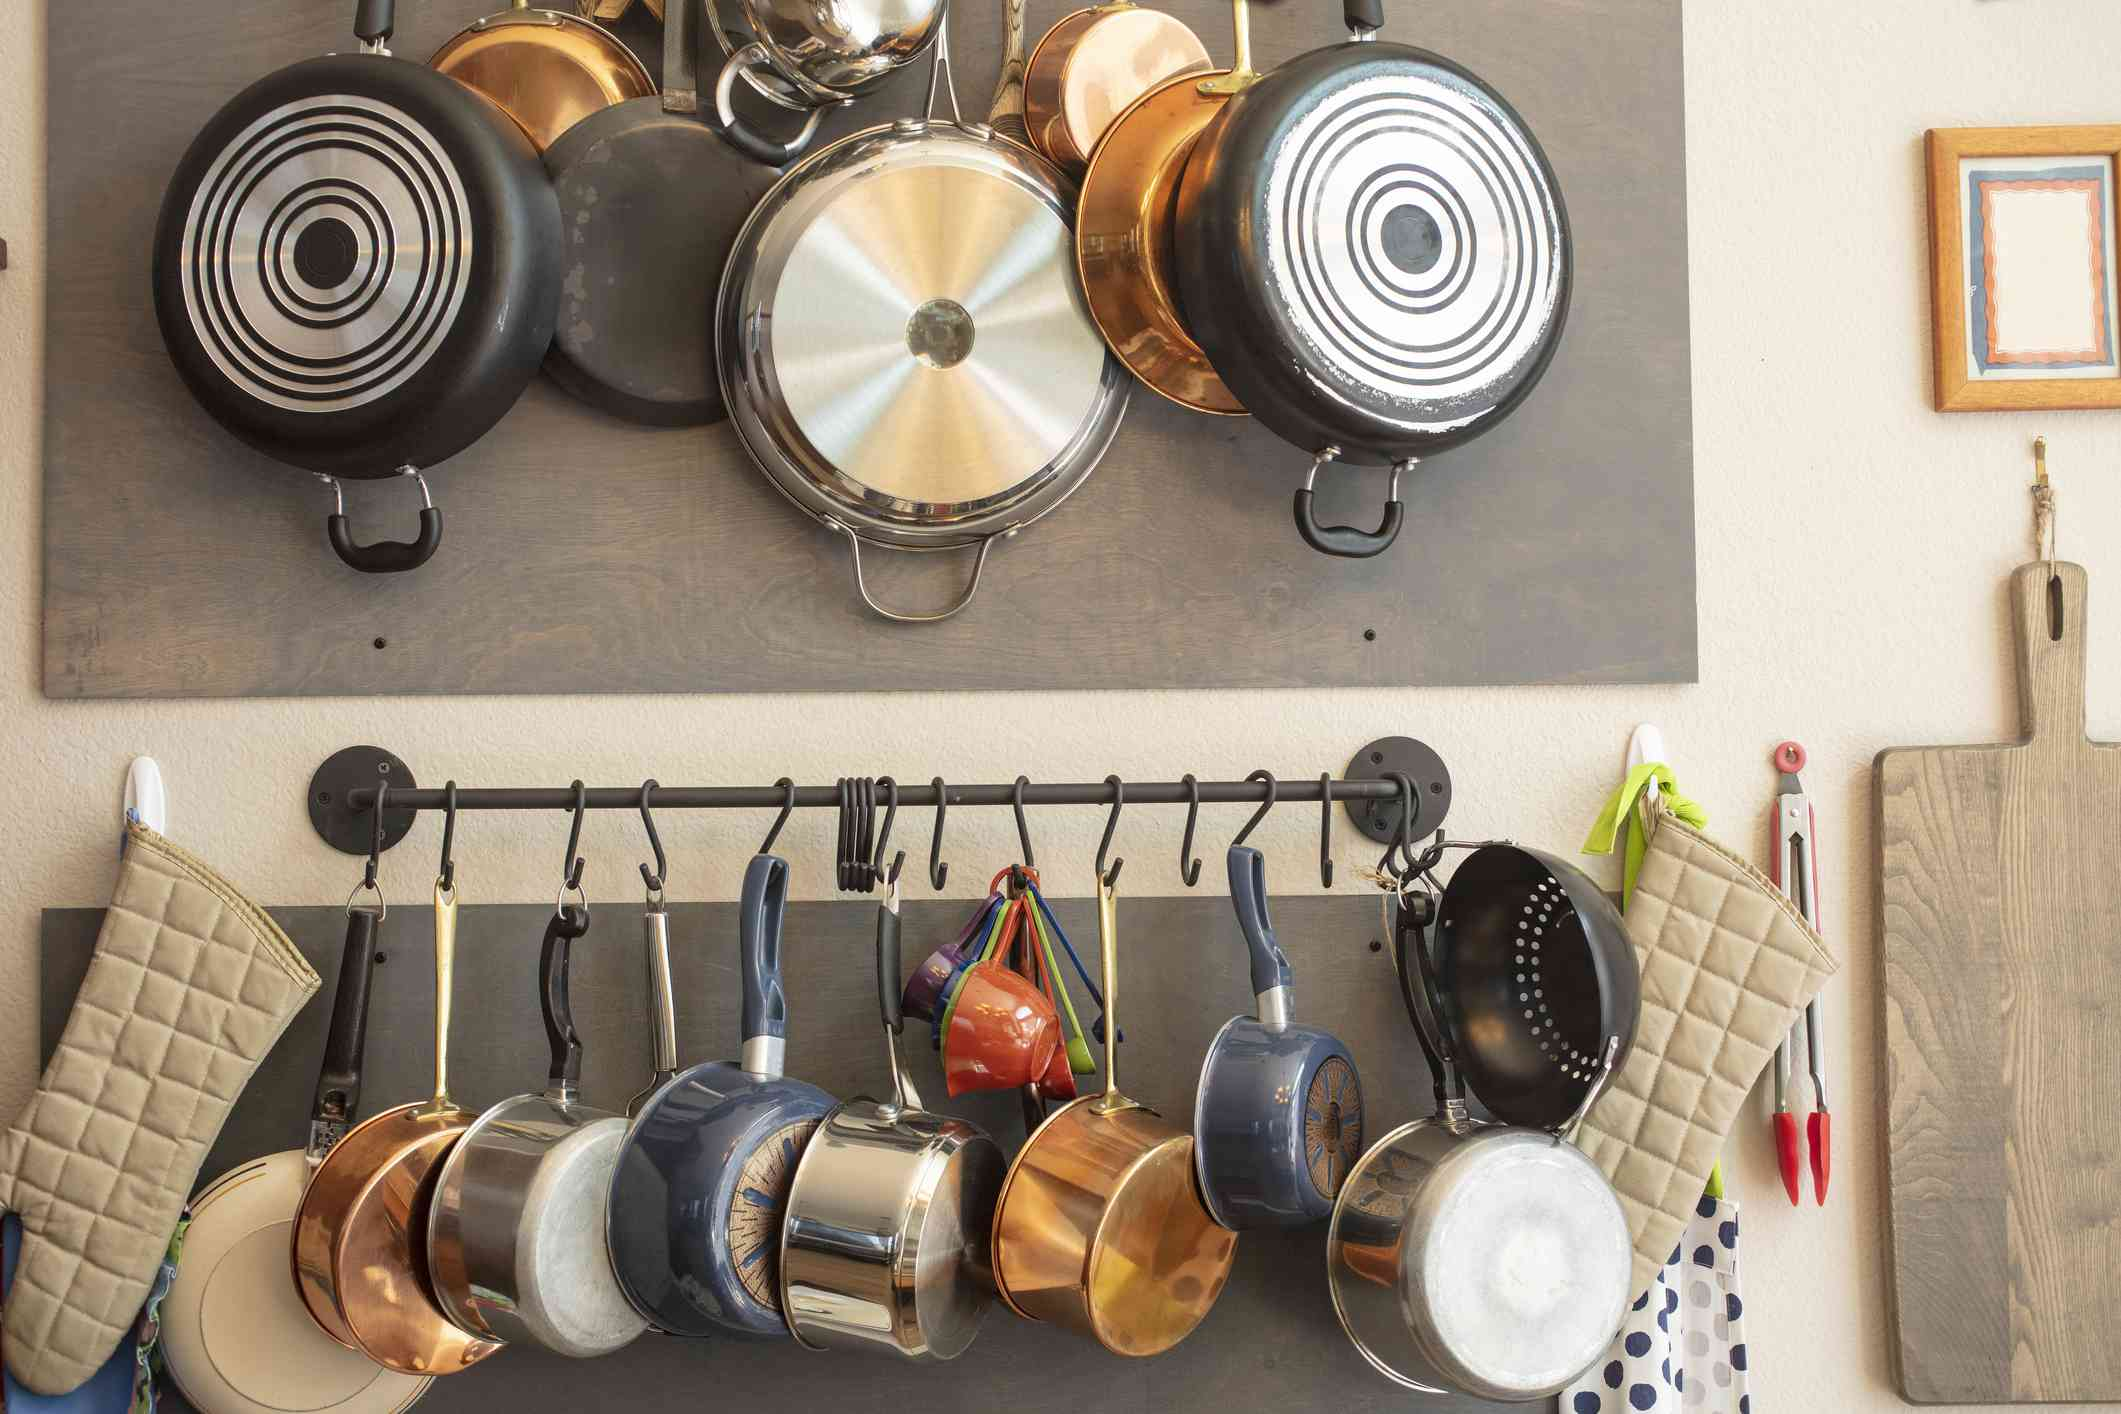 pans hanging from a rack